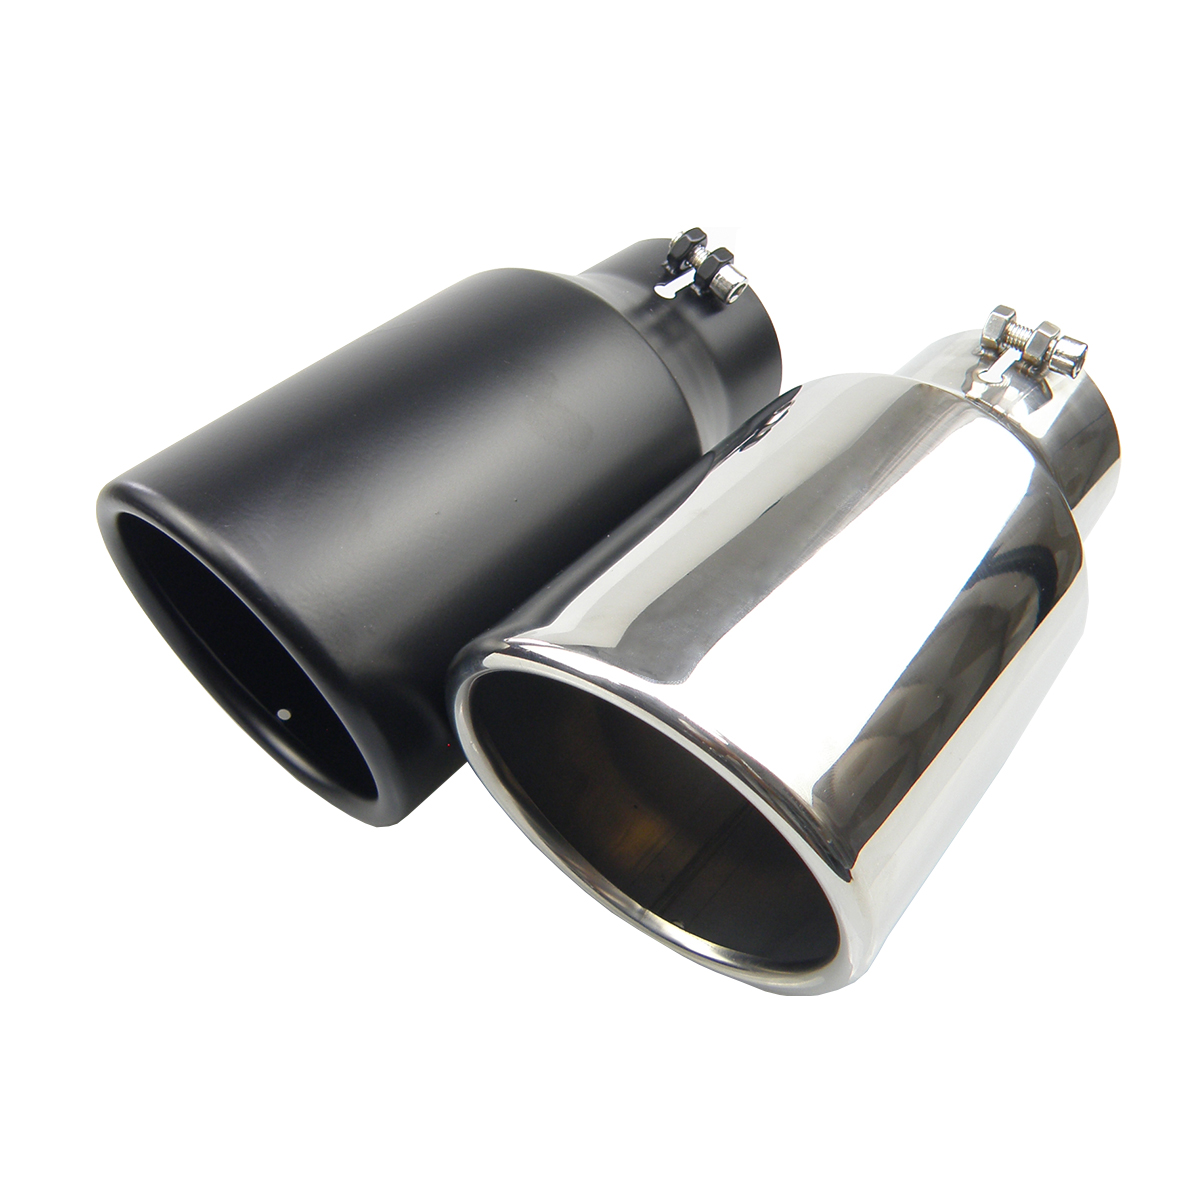 car bolt on stainless steel diesel 3 inlet 4 5 outlet exhaust muffler tip black or siliver color rolled end angle cut tail pipe